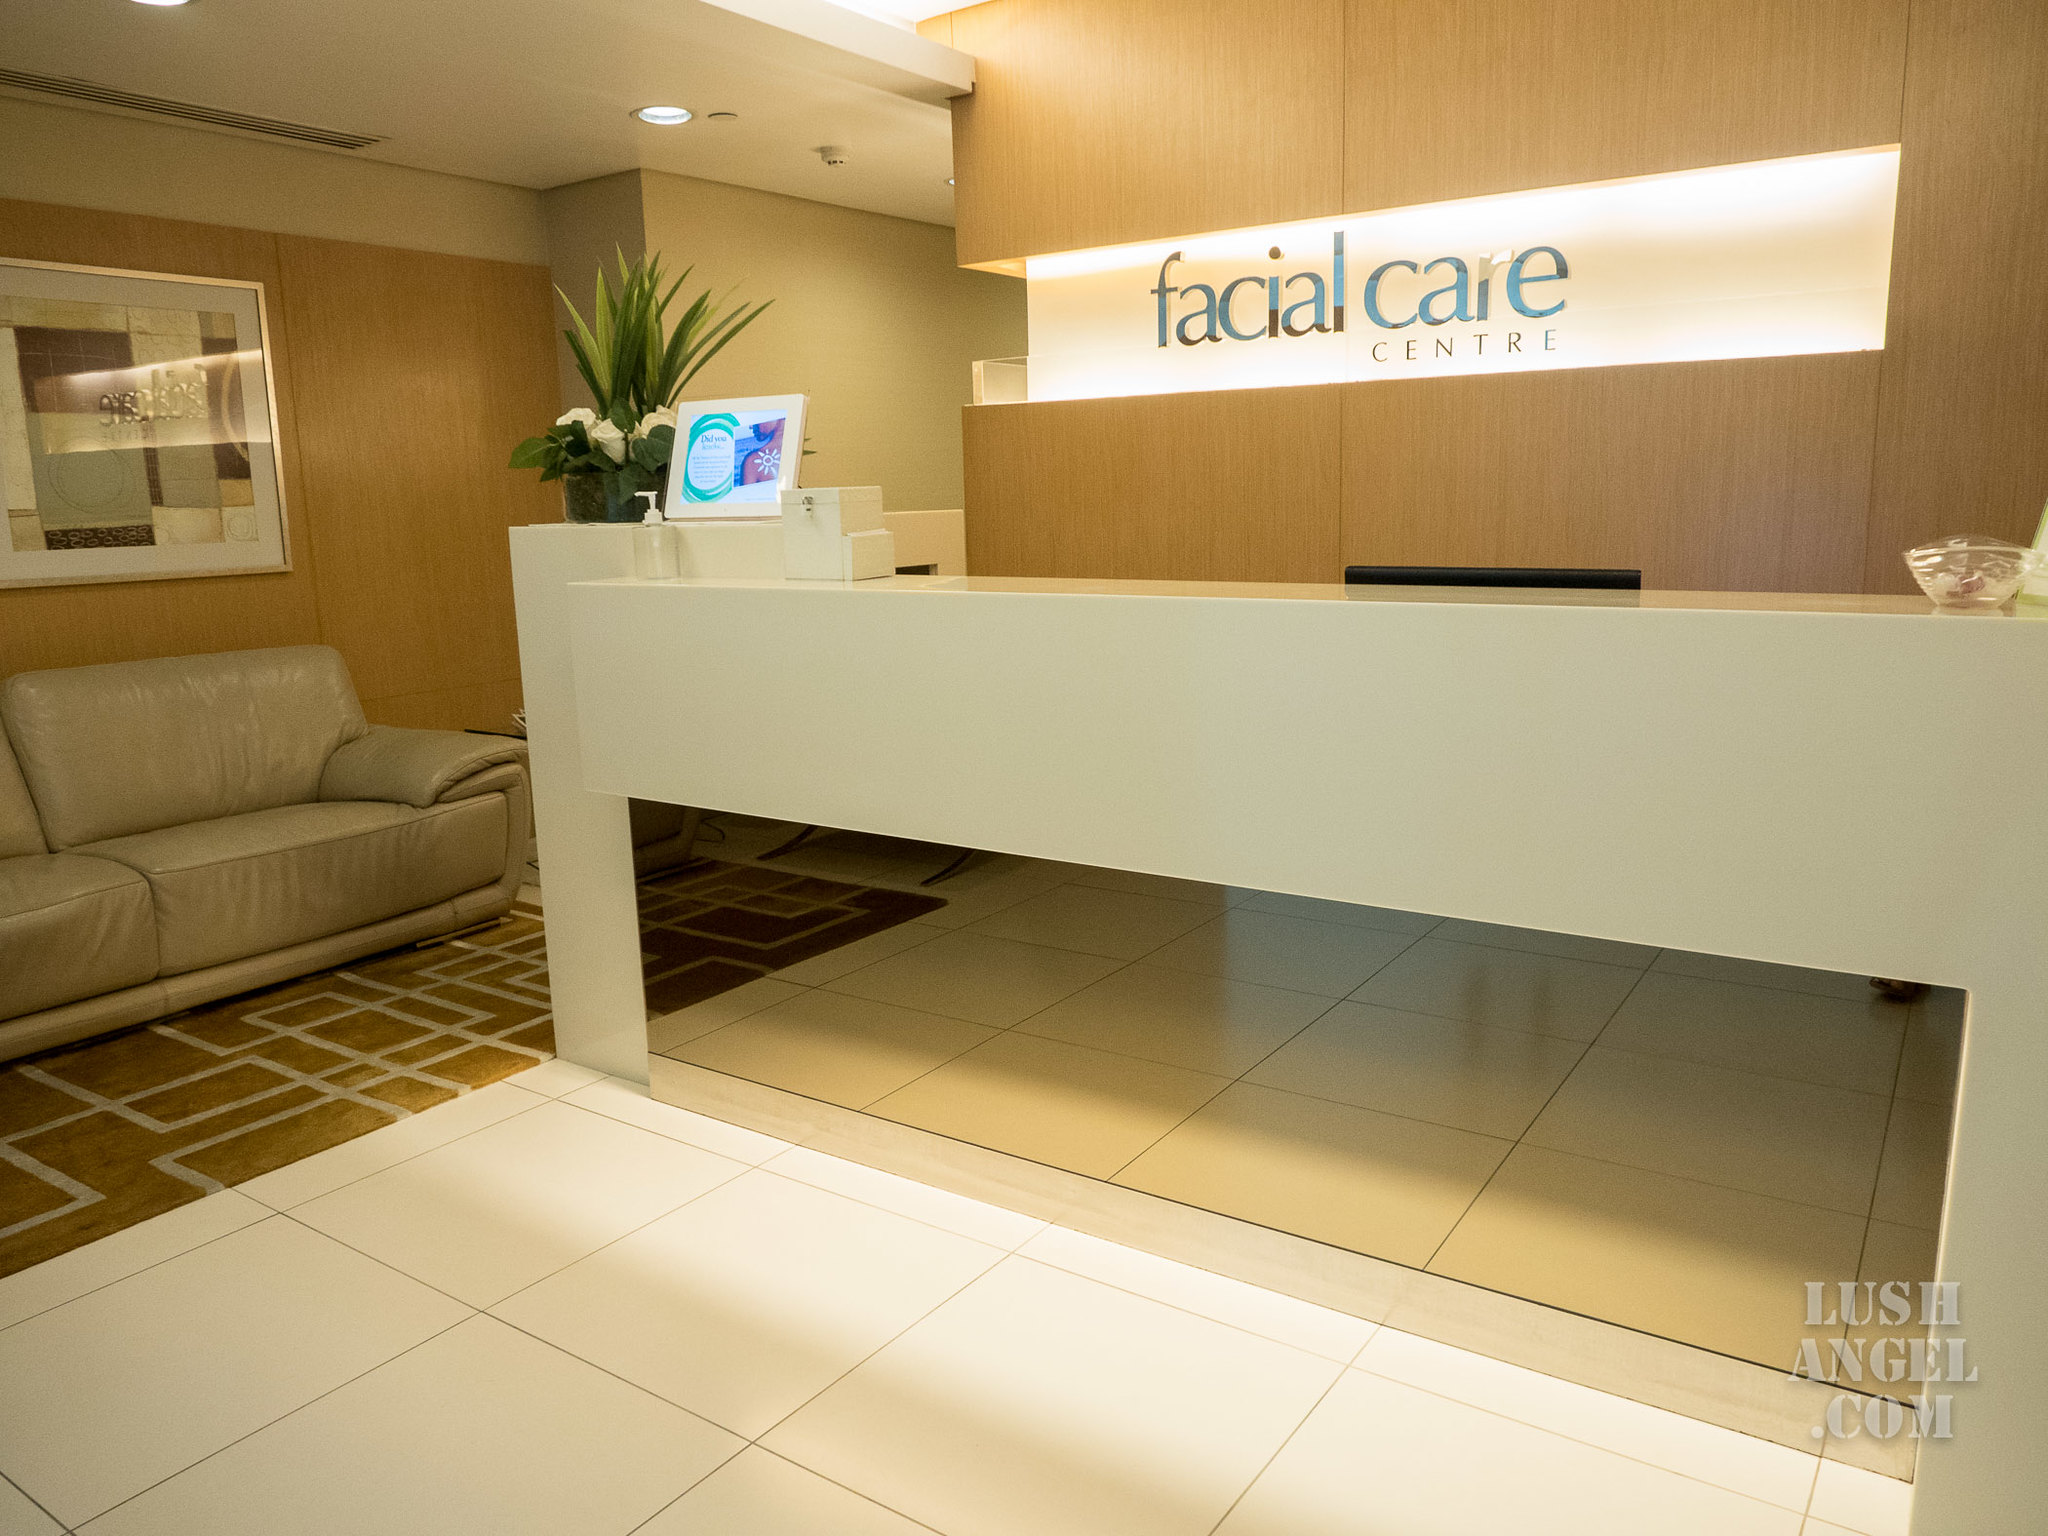 facial-care-centre-services